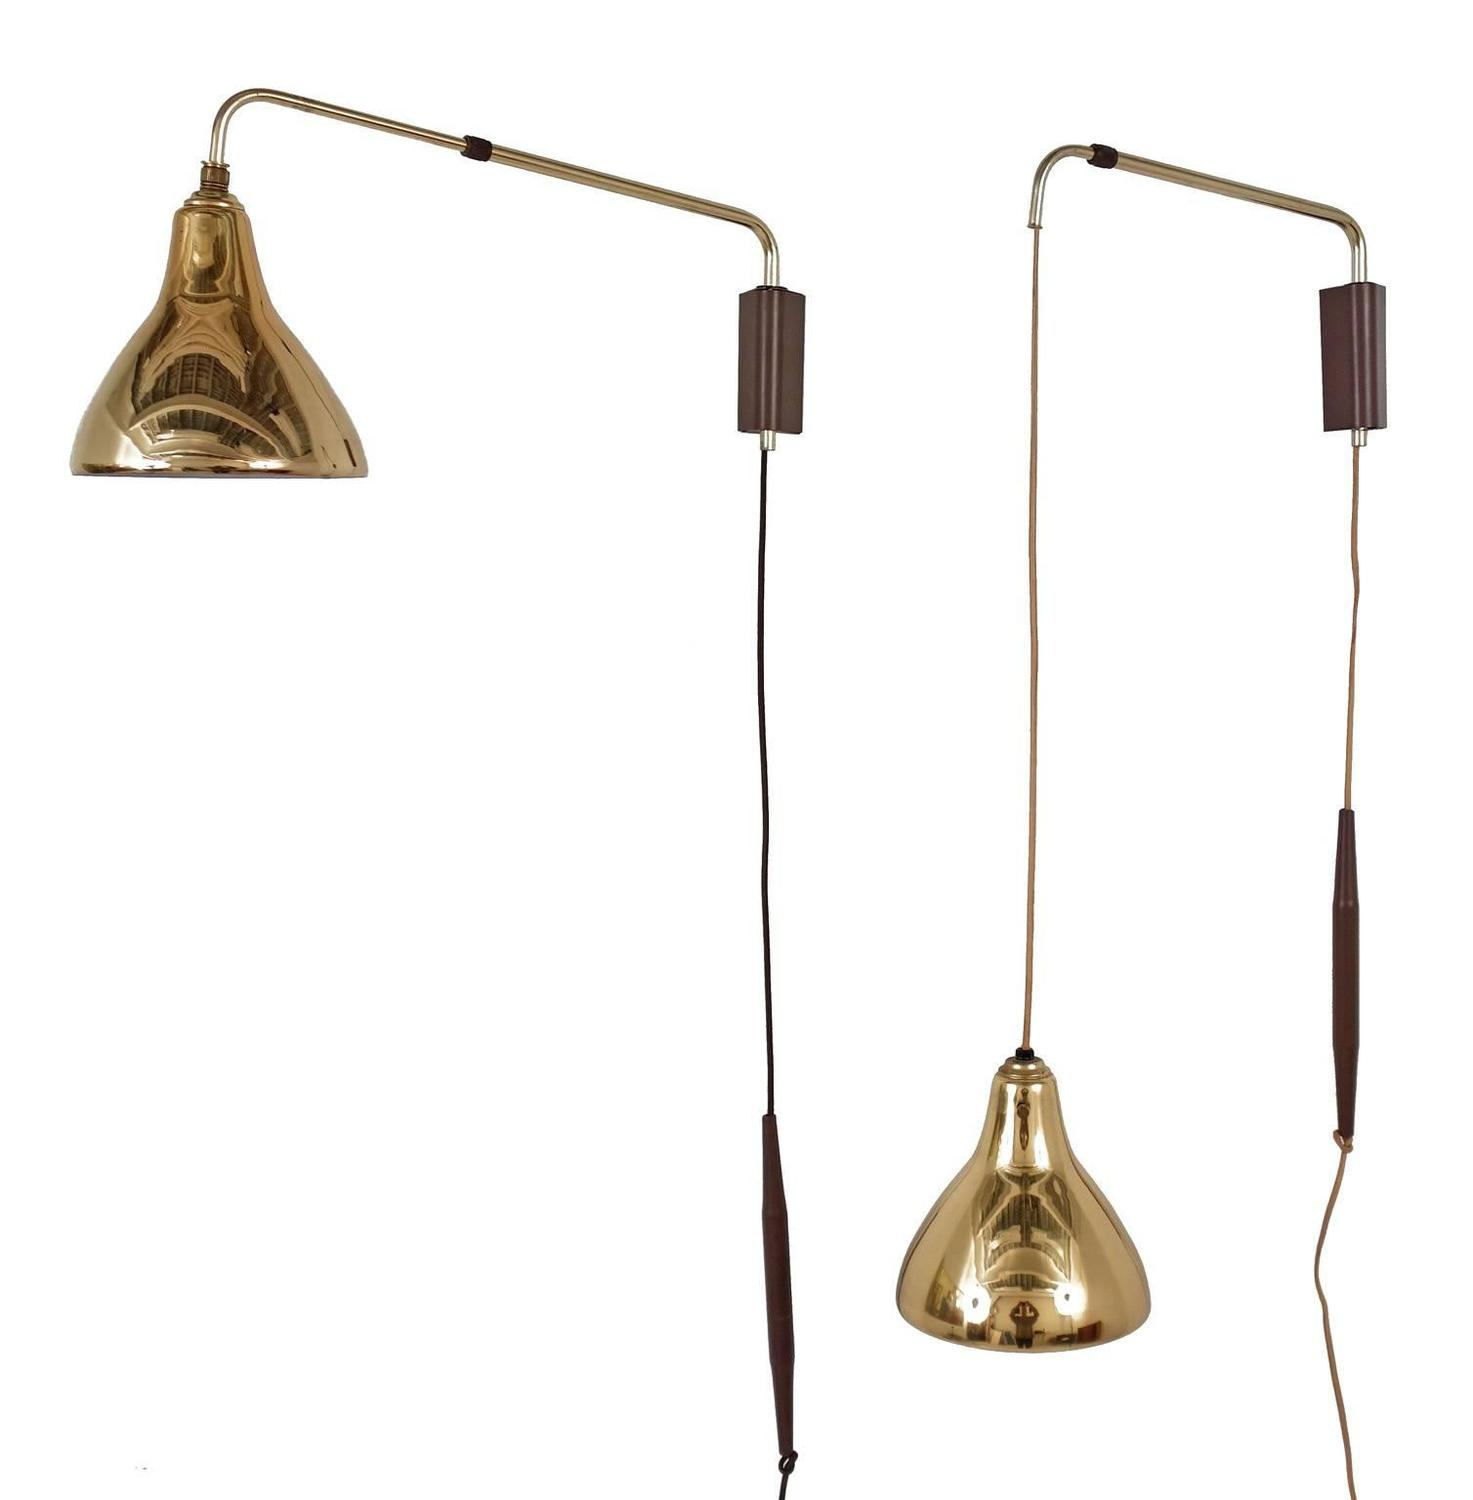 Gerald Thurston Wall Lamps Adjustable Swing Arm at 1stdibs